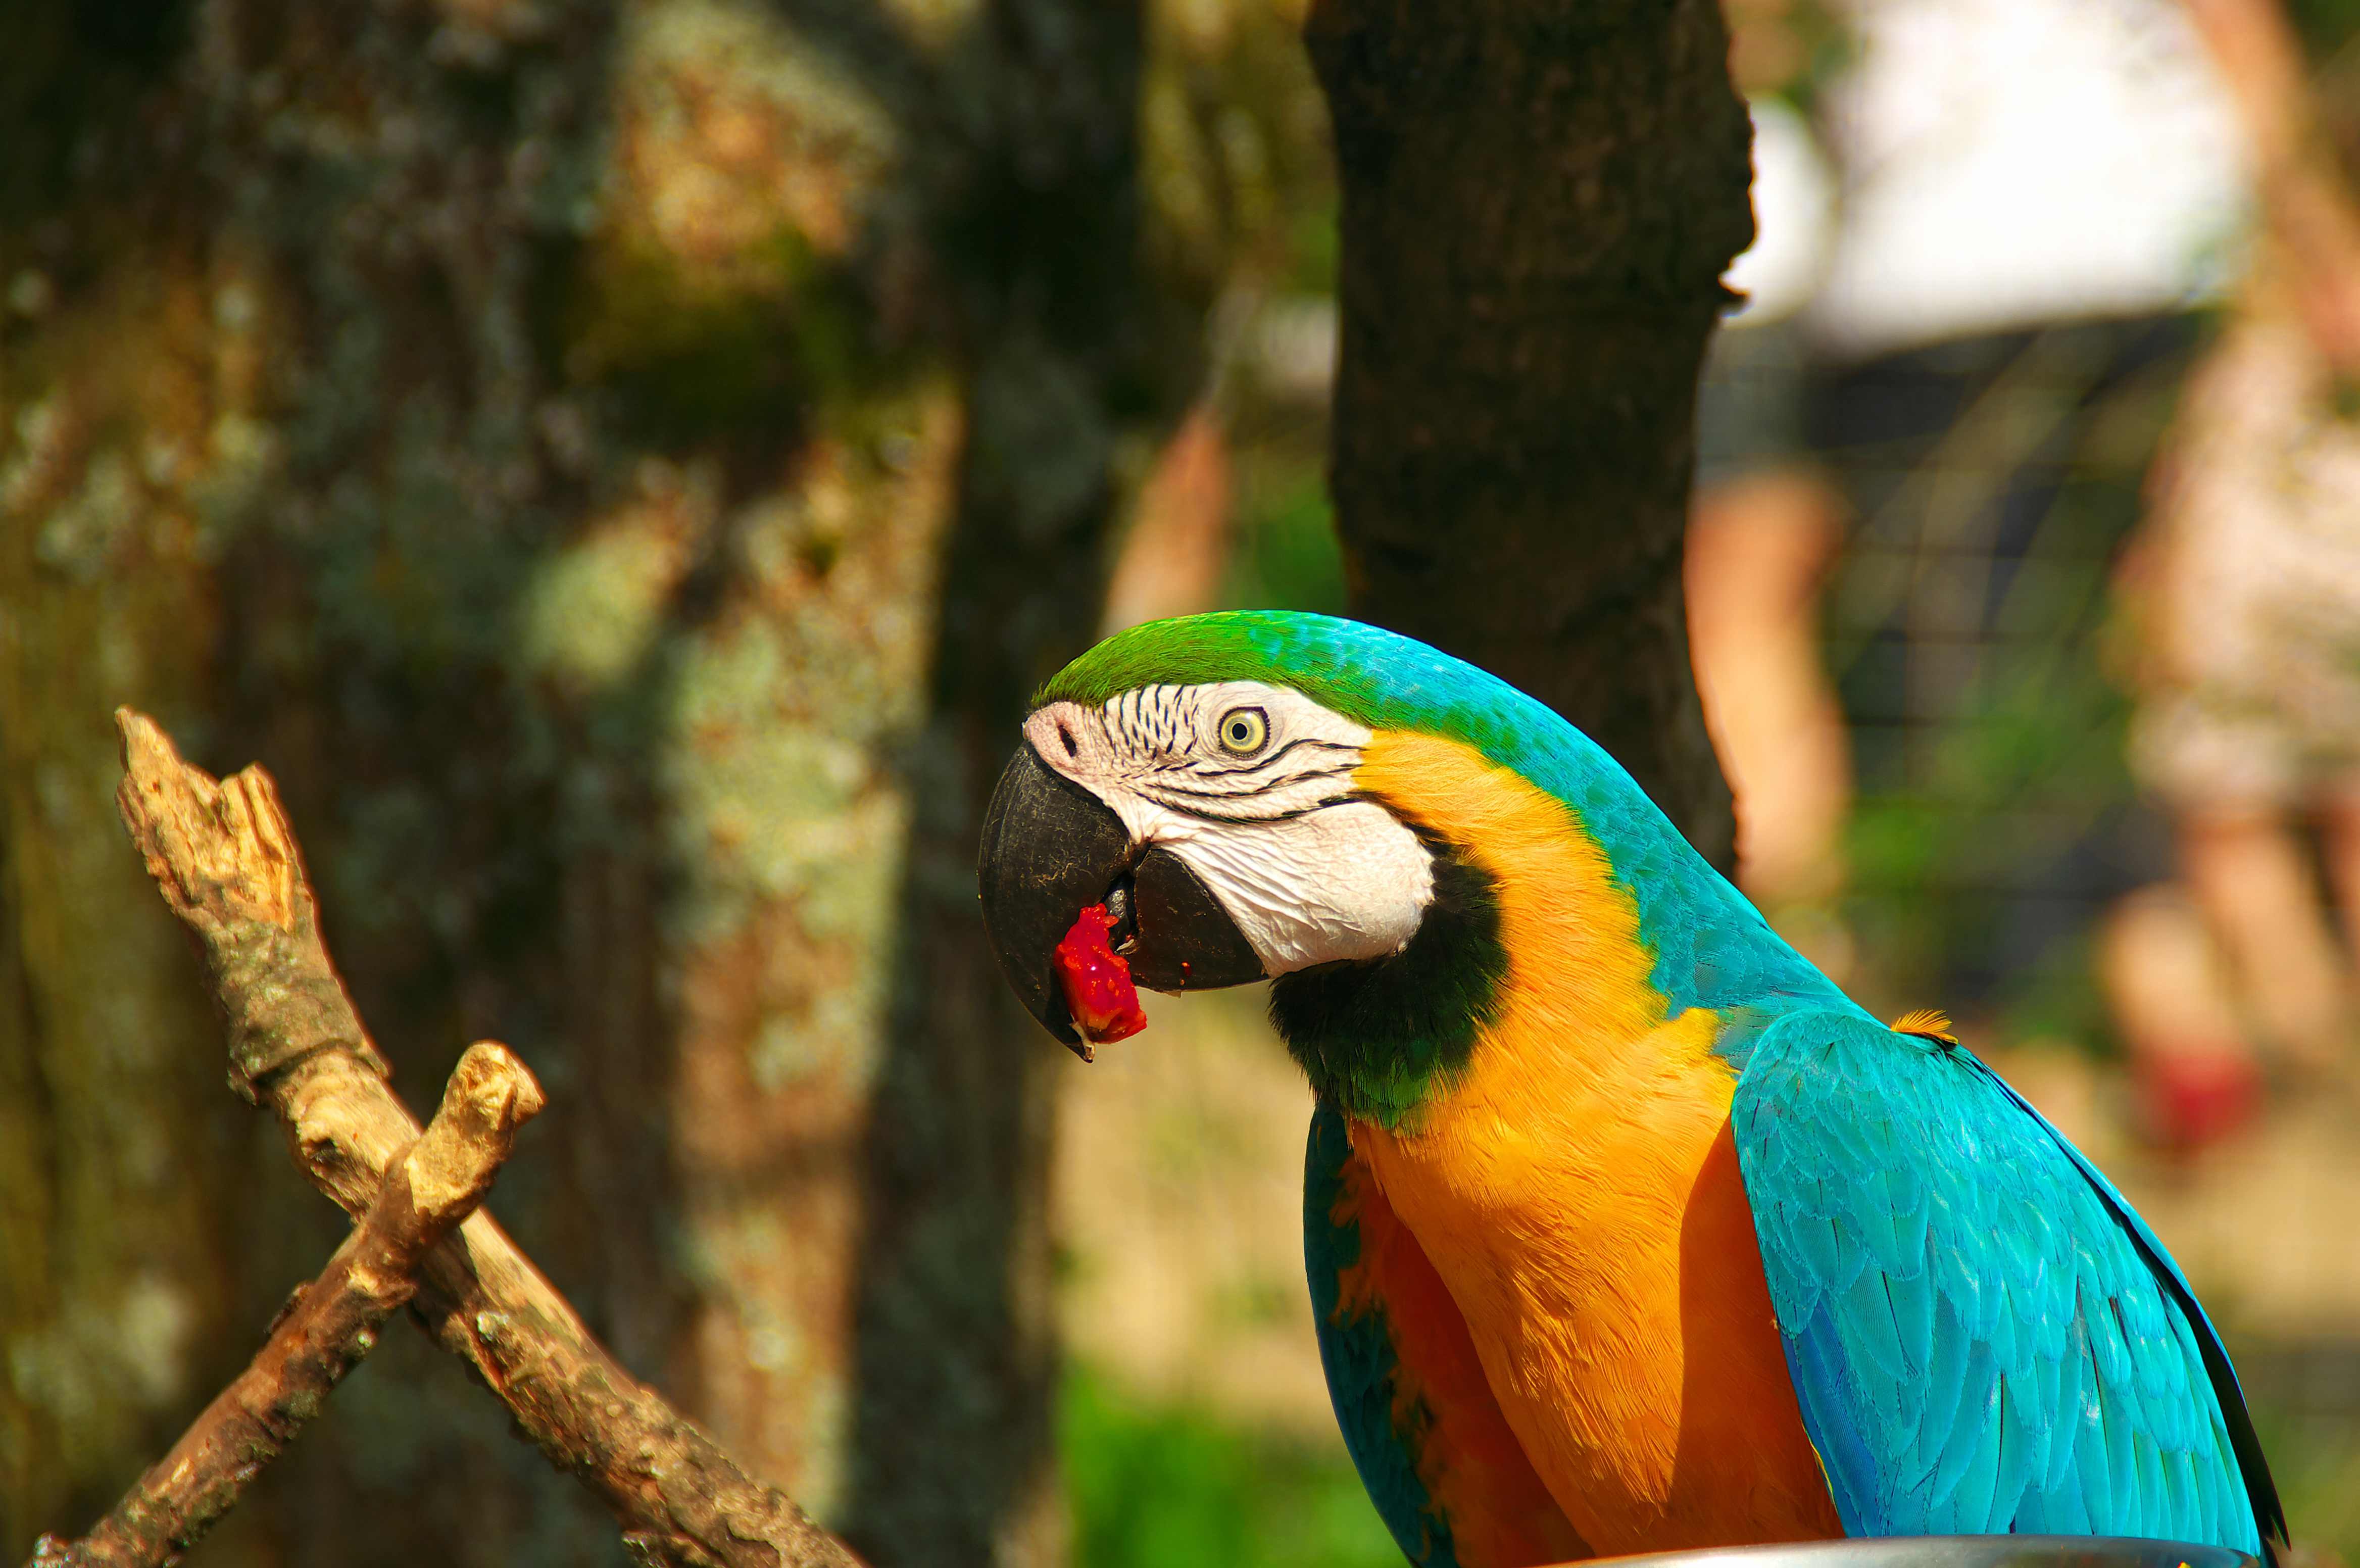 112160 download wallpaper Animals, Parrots, Macaw, Bird, Beak screensavers and pictures for free